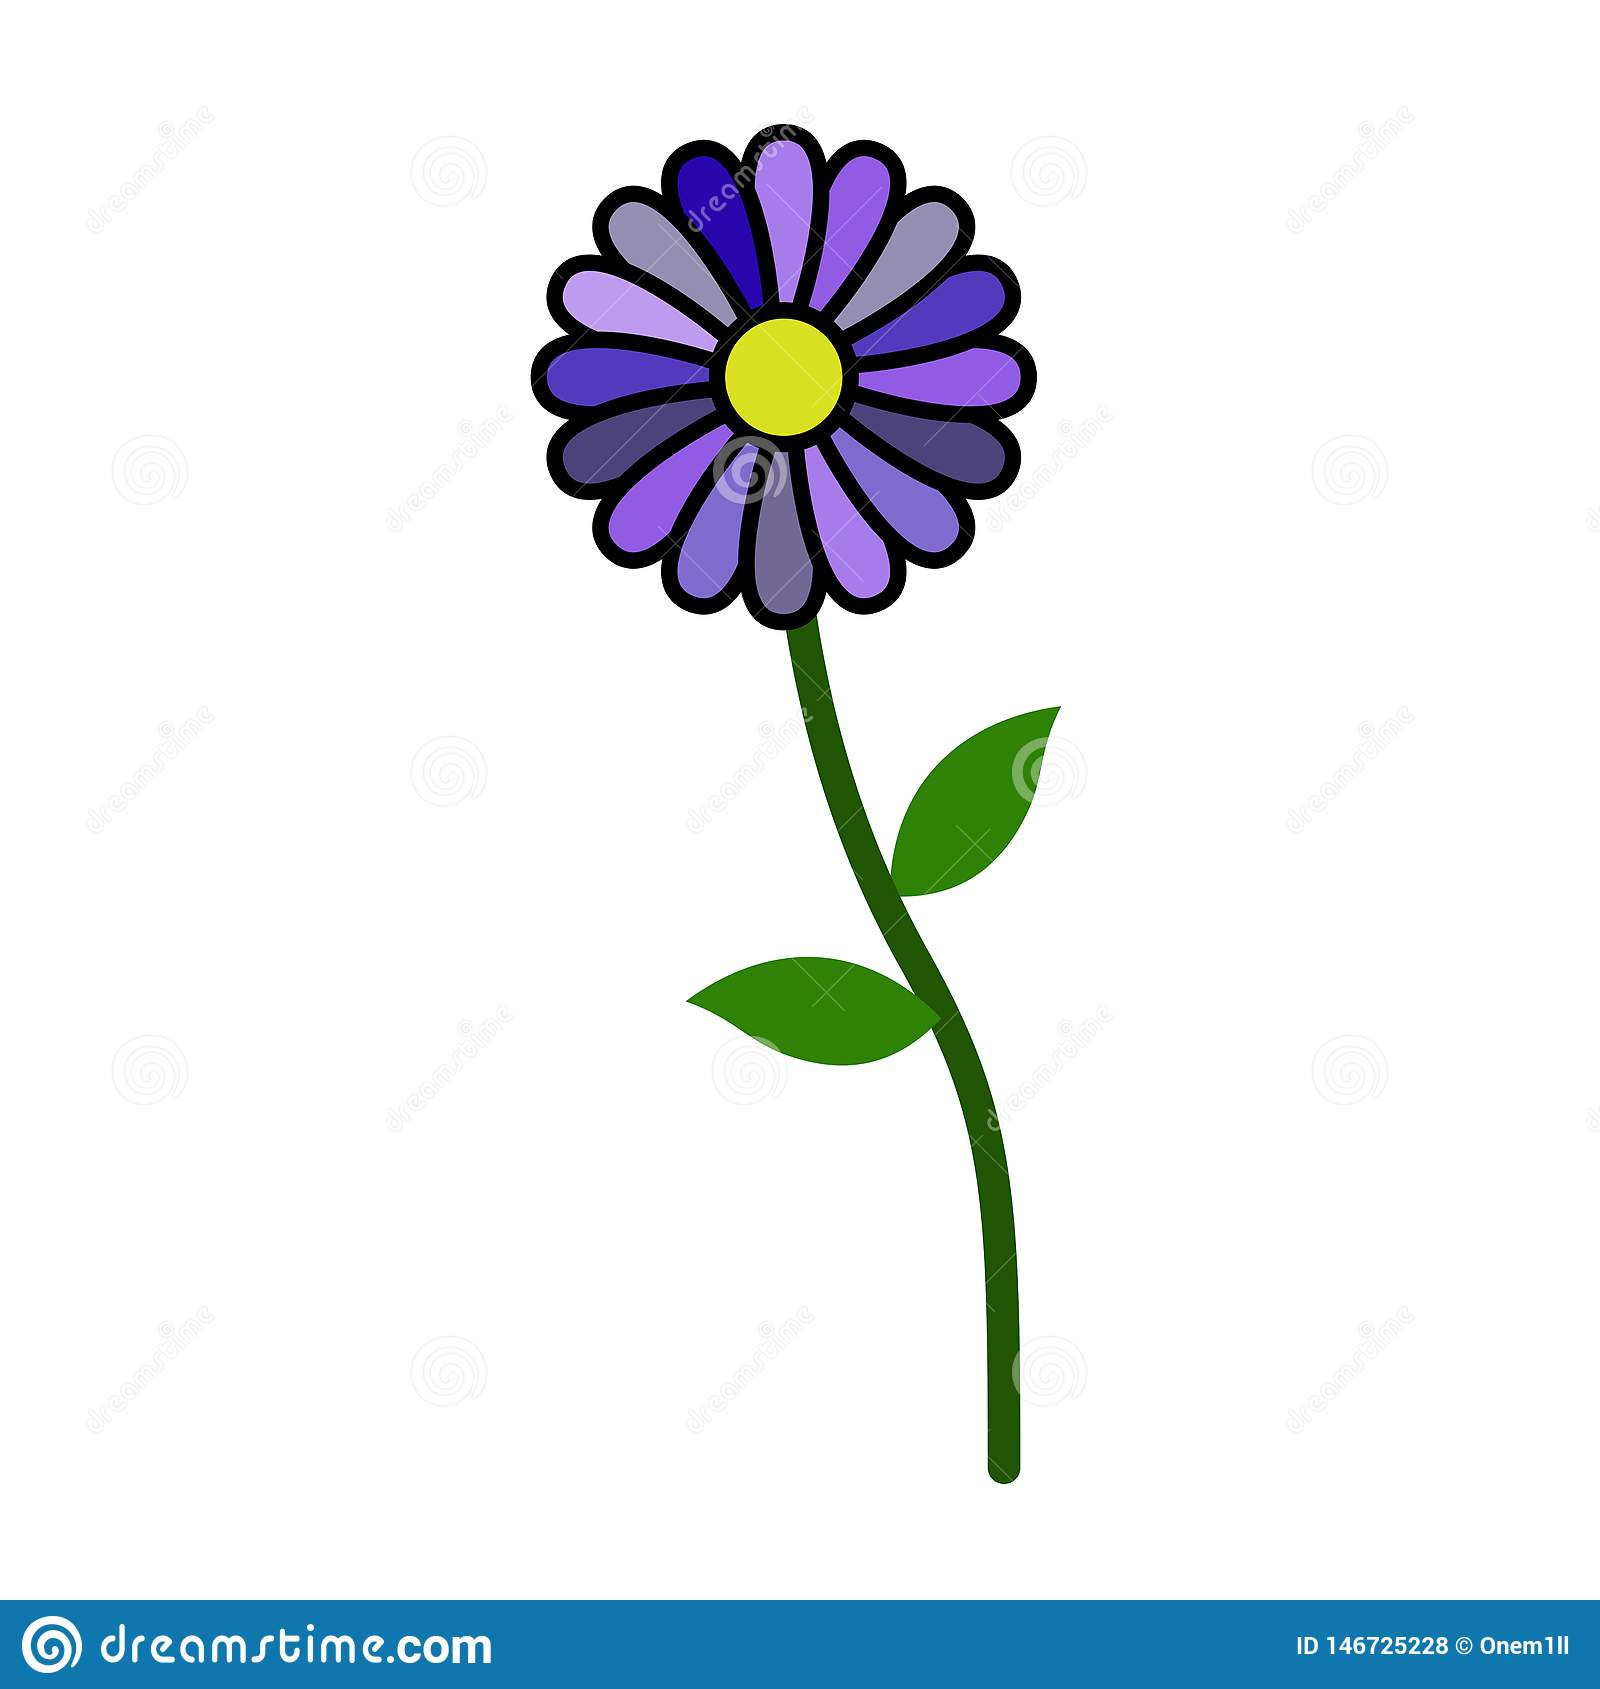 Lonely standing flower without stroke isolated on white background. New, 2019